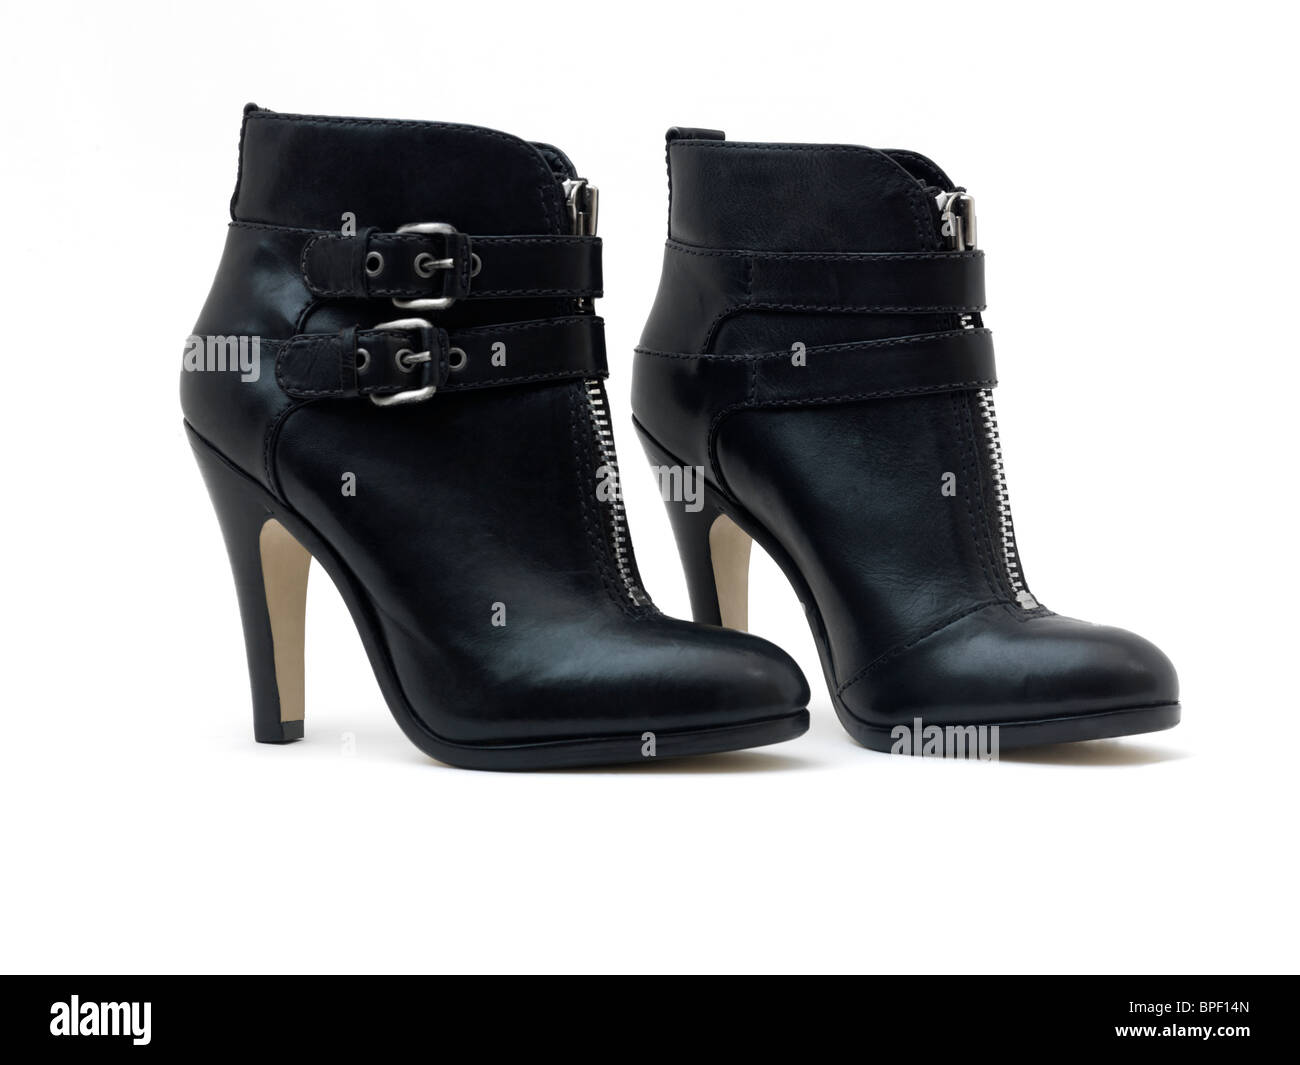 Pair of Ladies Black Leather High Heeled Stiletto Ankle Boots with ...